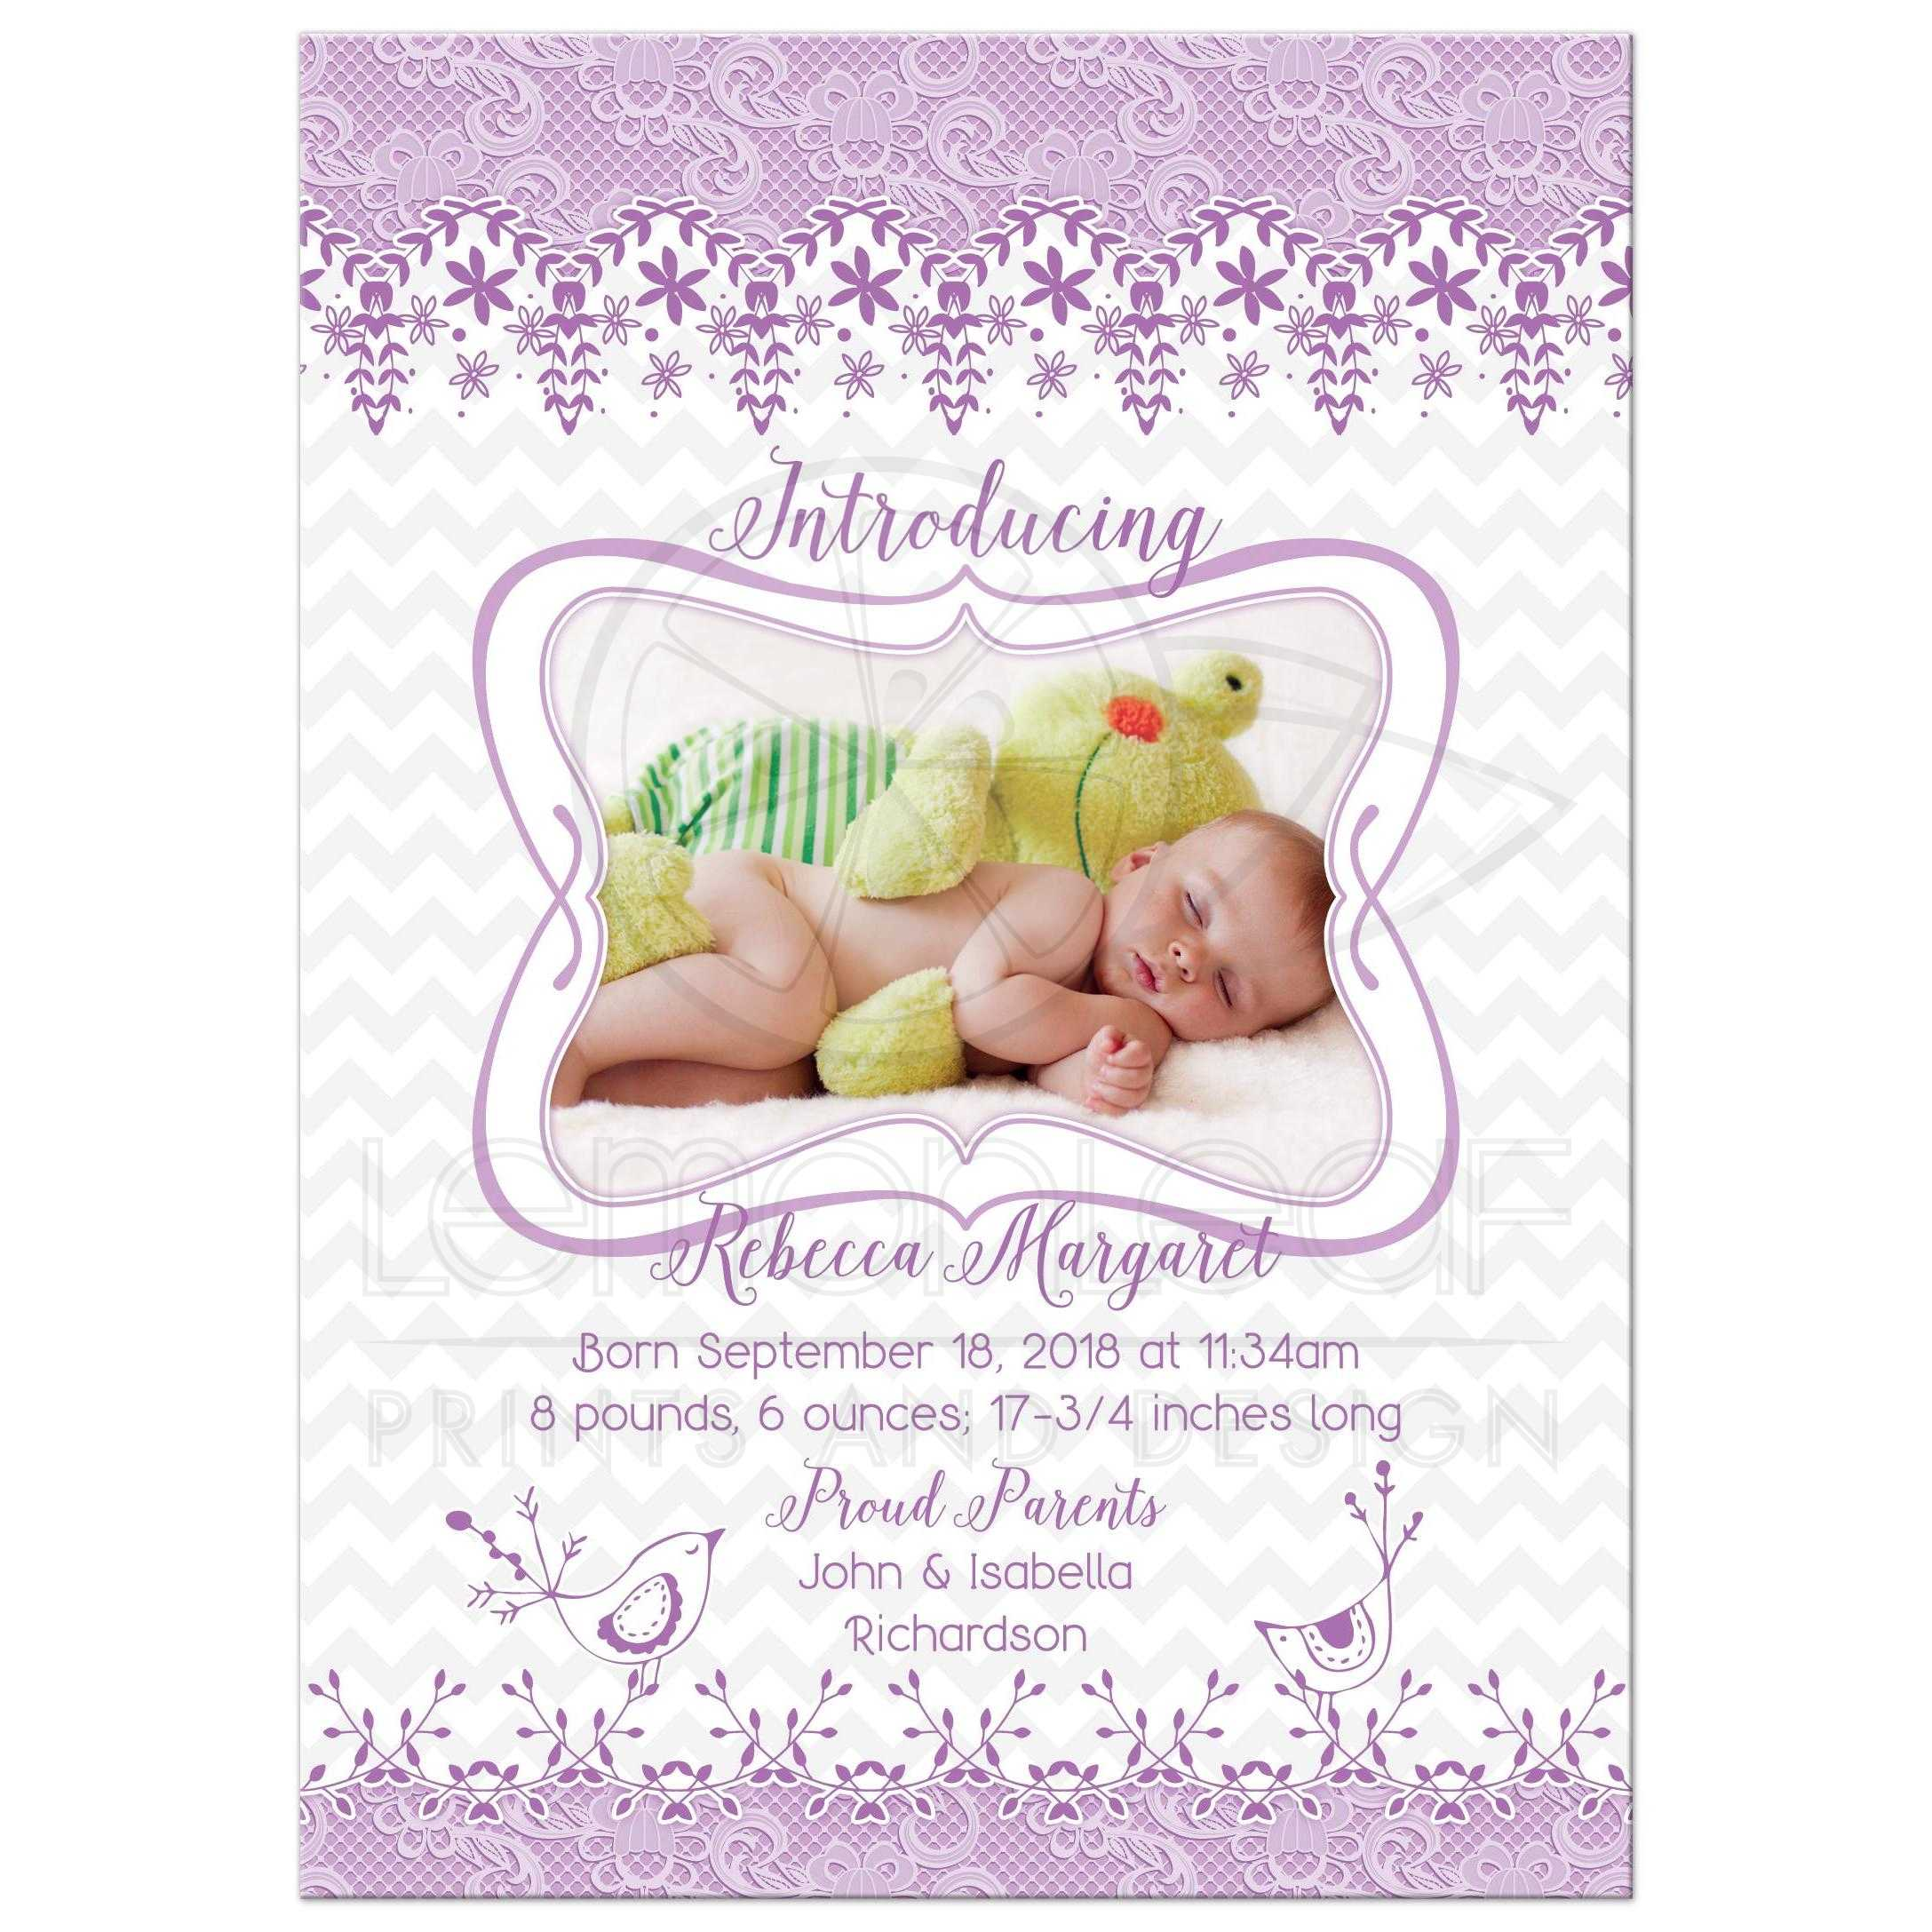 baby girl birth announcement purple lace whimsical bird floral